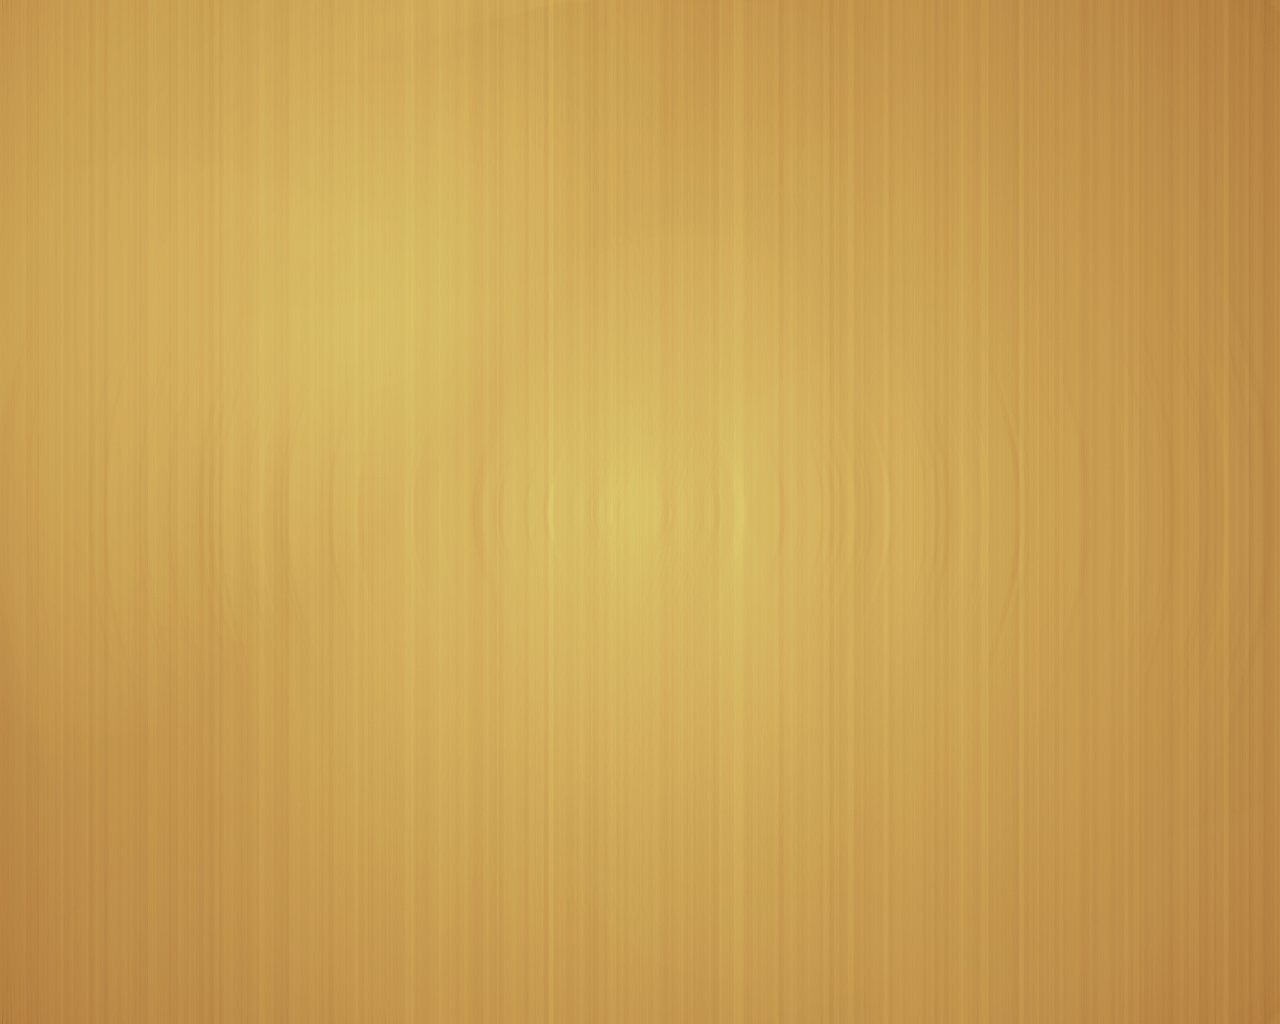 wallpaper stripes orange by 10r